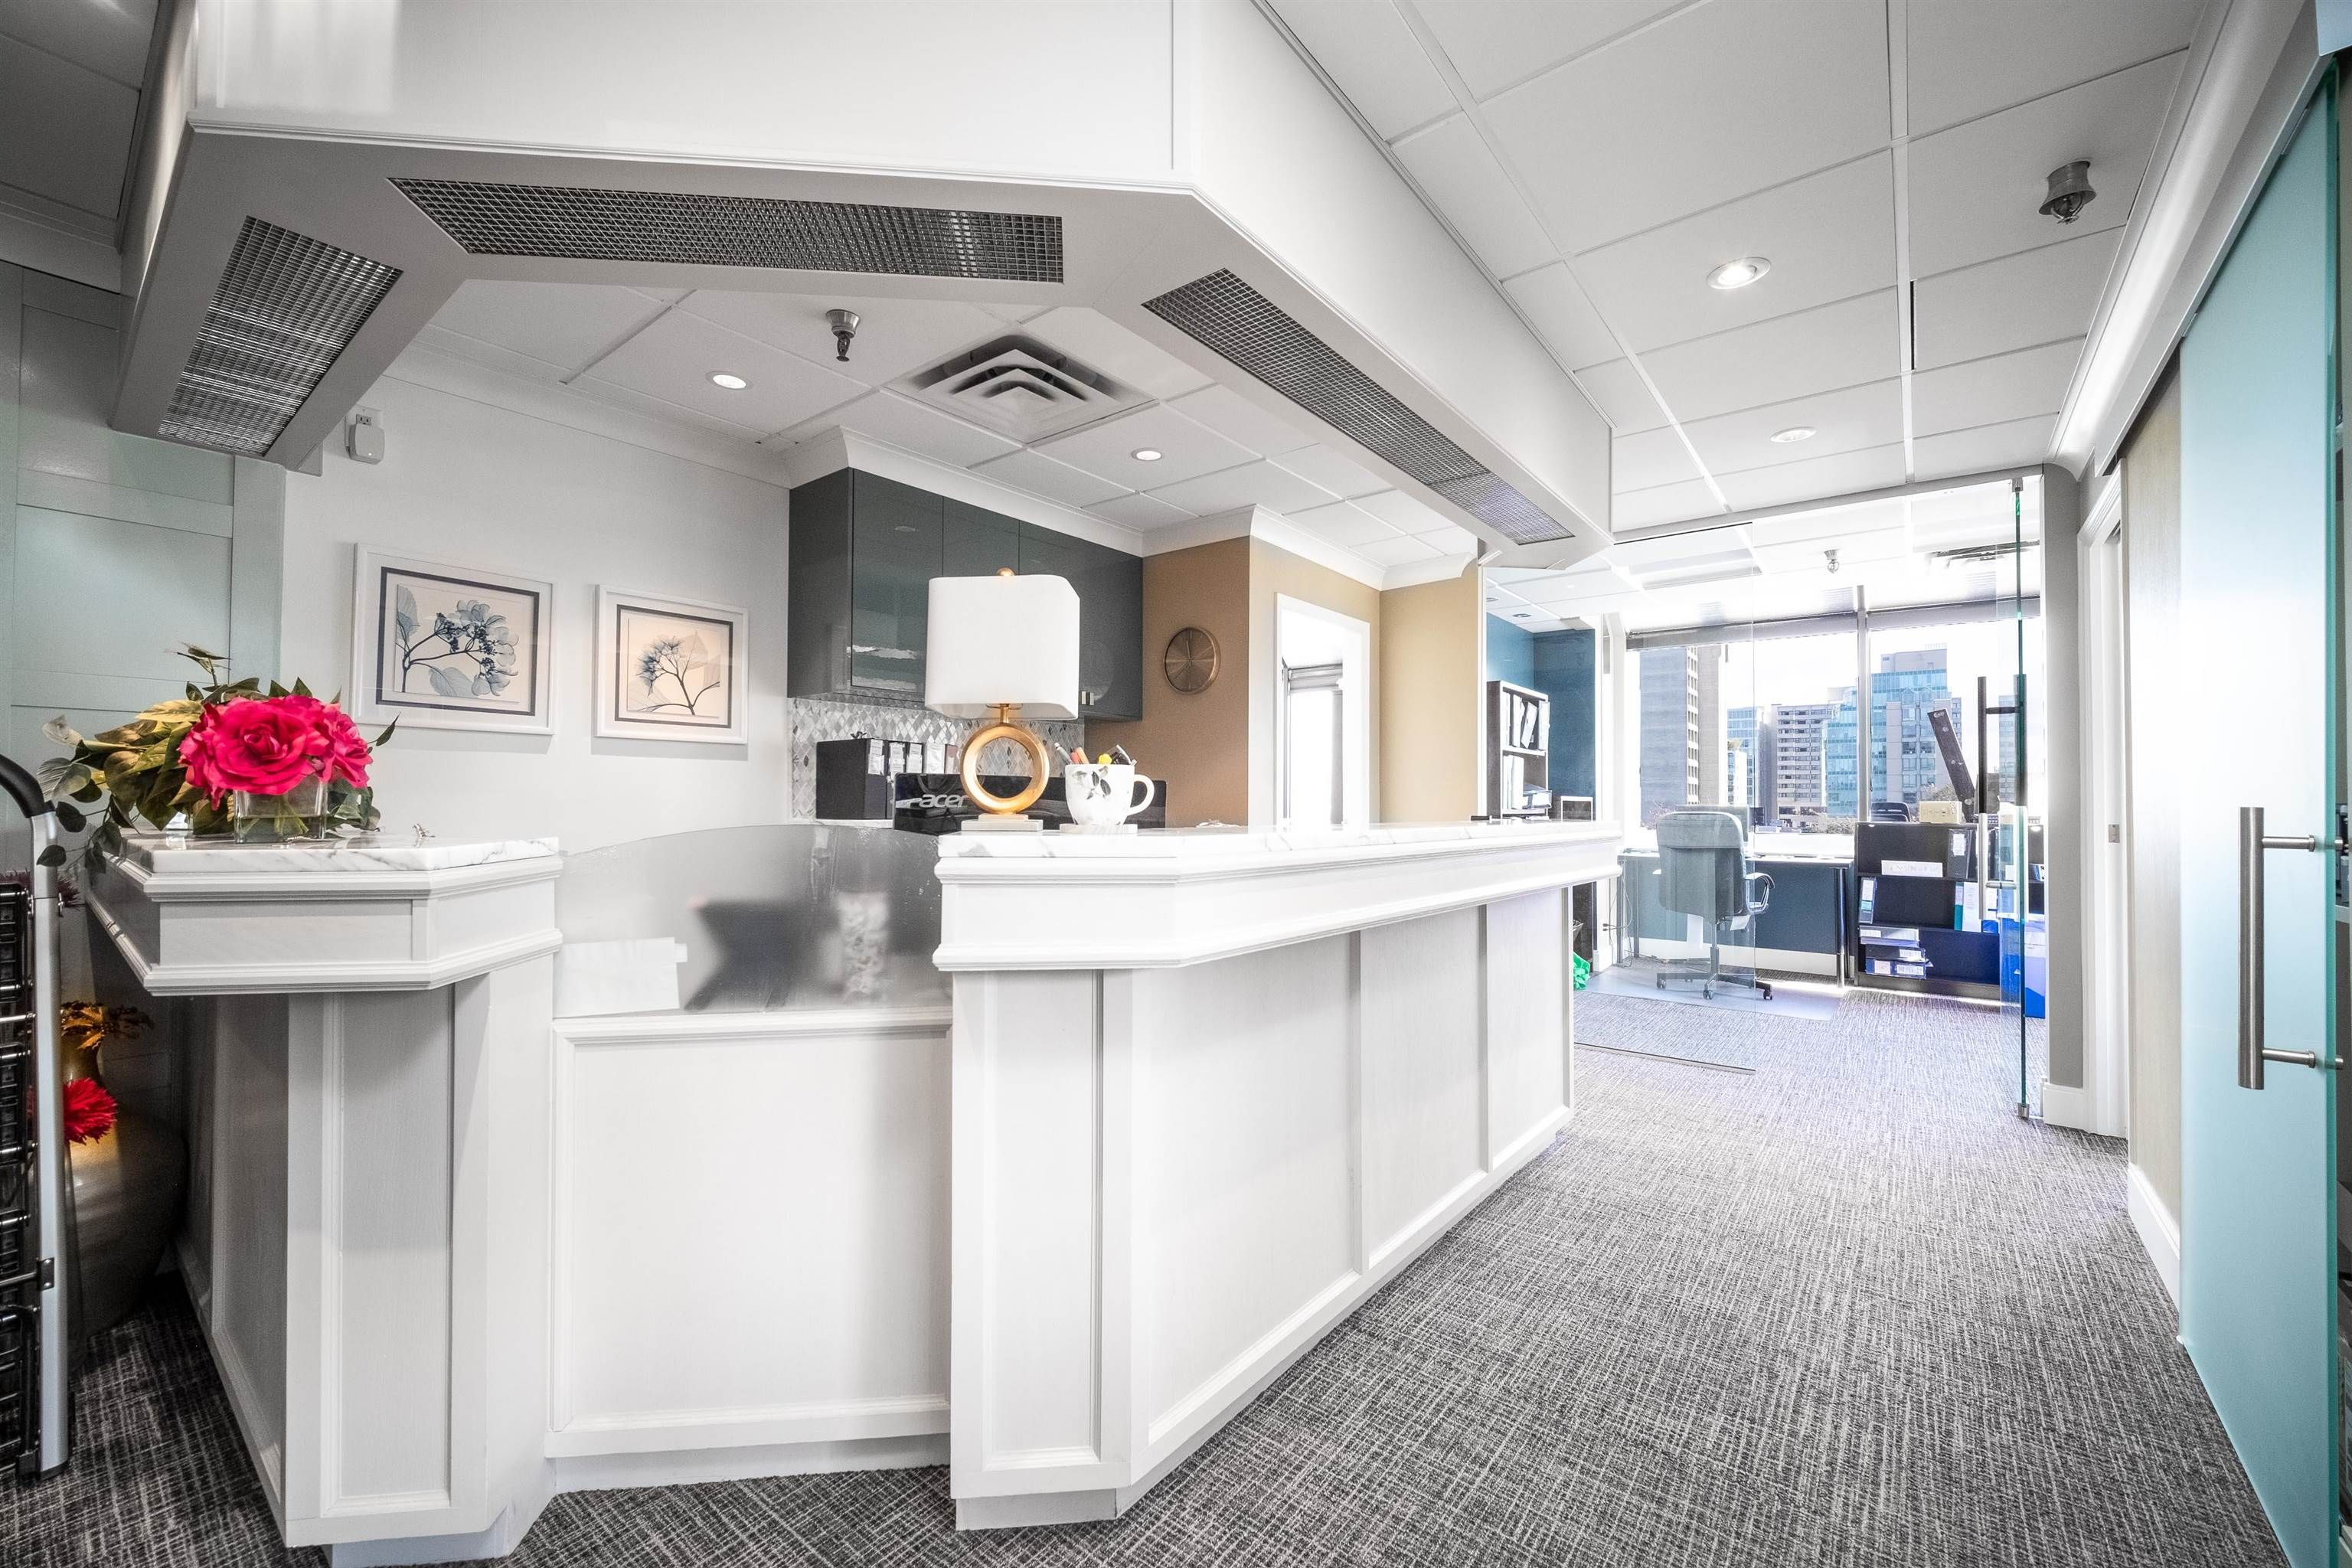 """Main Photo: 350 943 W BROADWAY in Vancouver: Fairview VW Office for sale in """"BROADWAY MEDICAL BUILDING"""" (Vancouver West)  : MLS®# C8040701"""